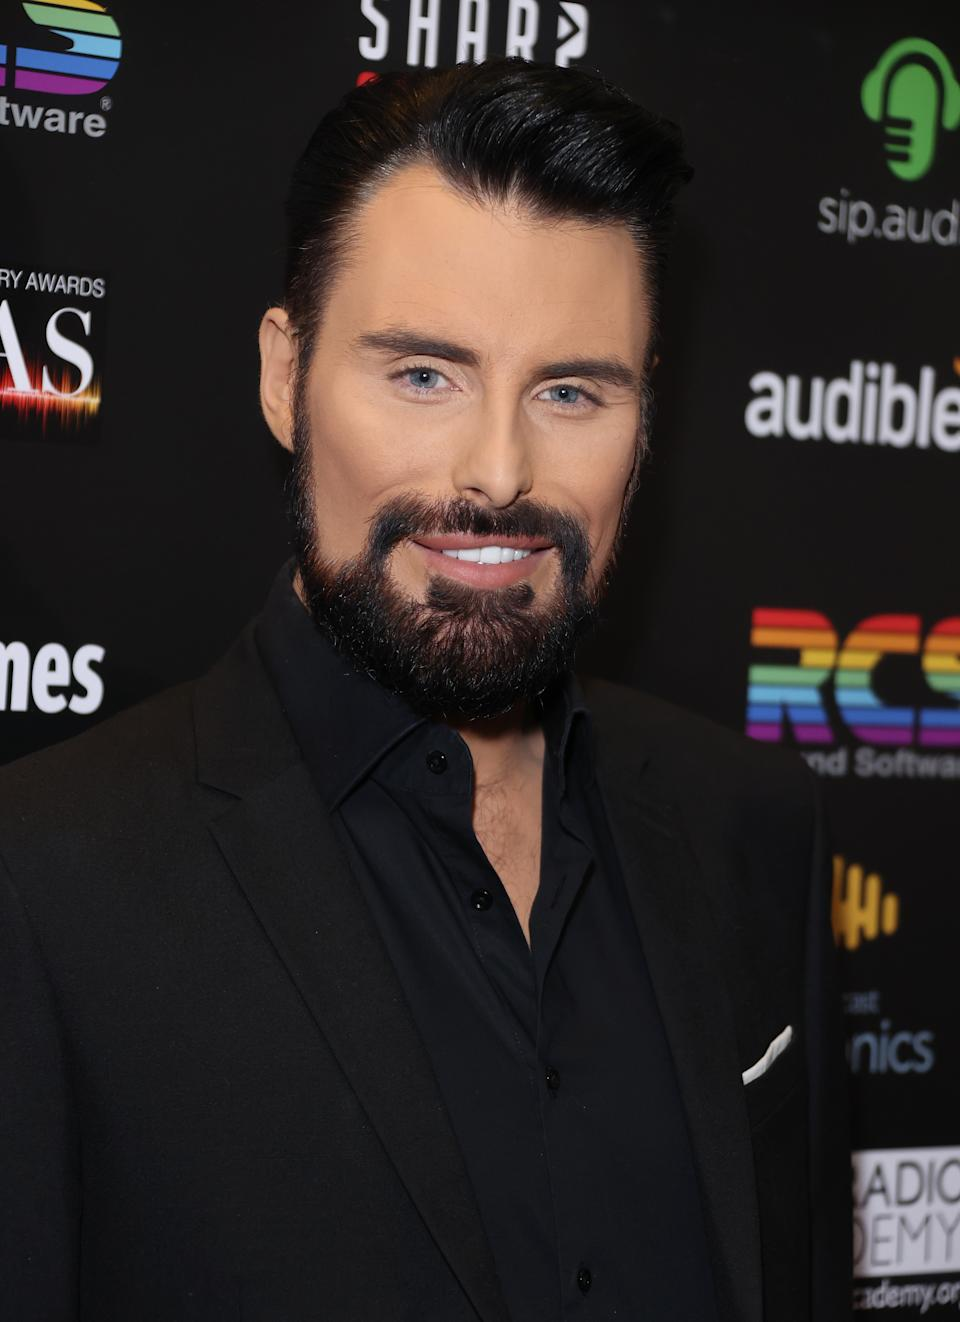 LONDON, ENGLAND - MARCH 04: Rylan Clark-Neal attends the Audio Radio & Industry Awards 2020 at London Palladium on March 04, 2020 in London, England. (Photo by Mike Marsland/WireImage)